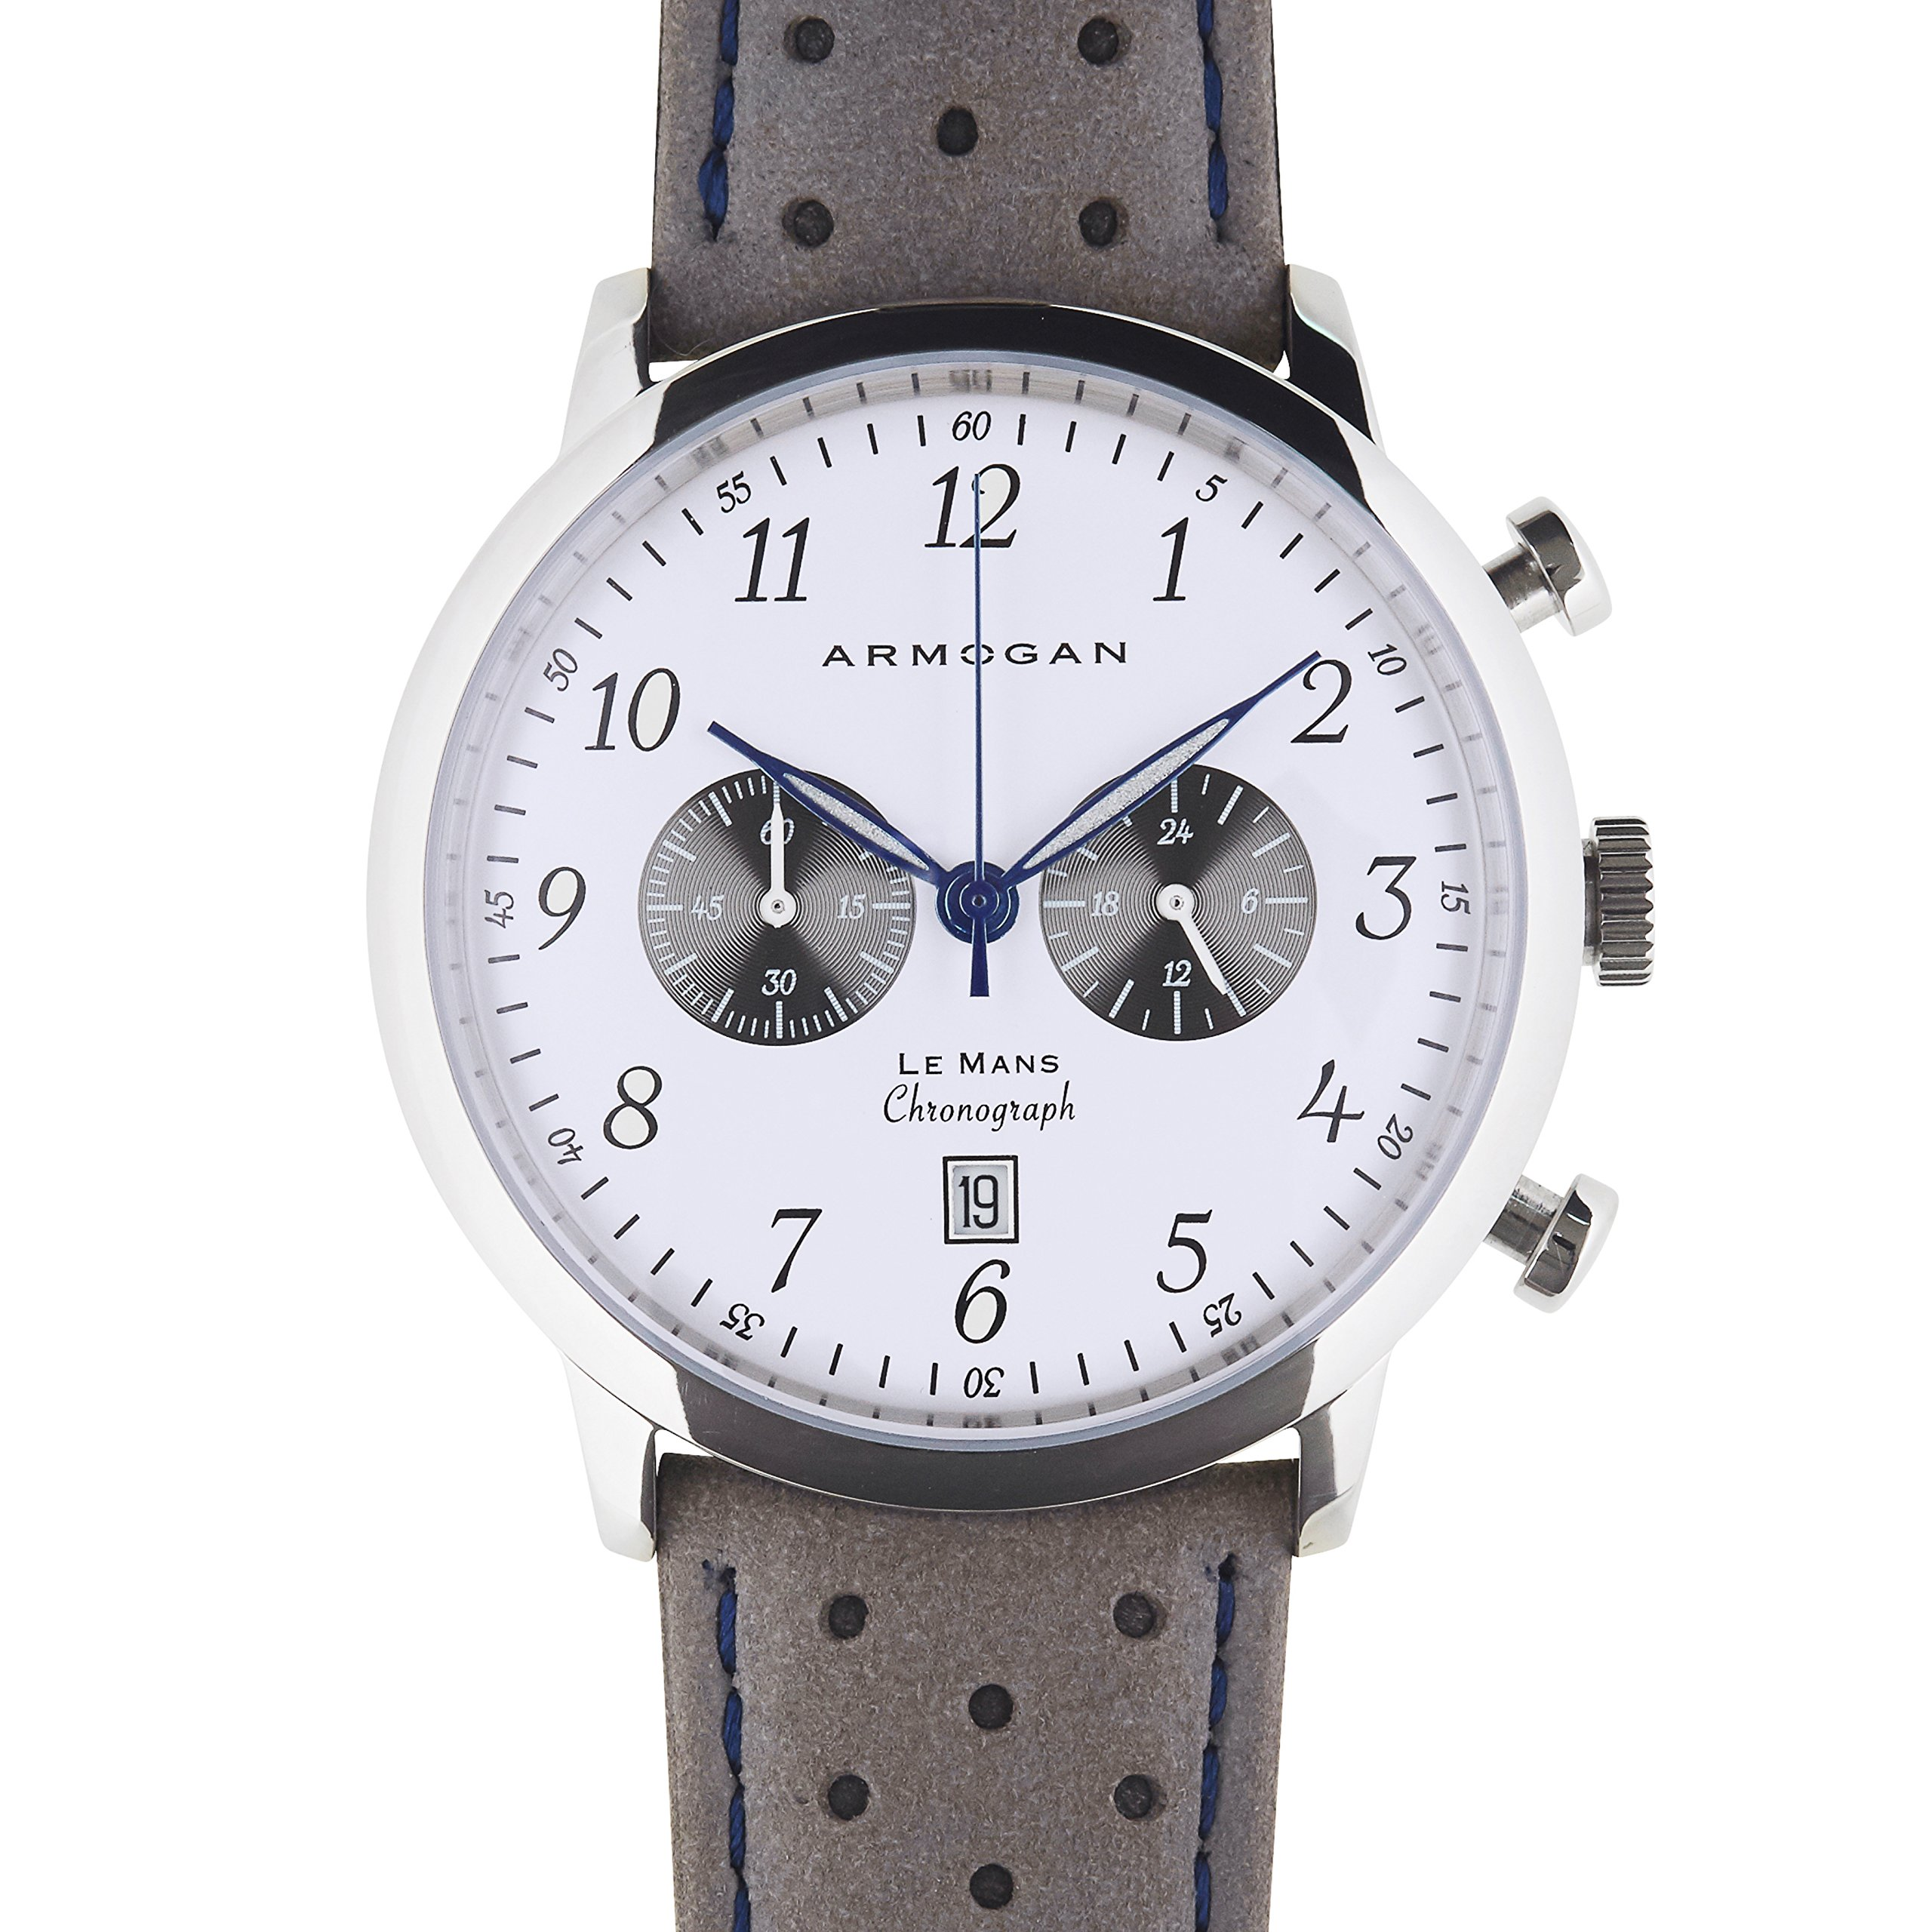 Armogan Le Mans - Moon White C90 - Men's Chronograph Watch - Perfored Suede Leather Strap by ARMOGAN